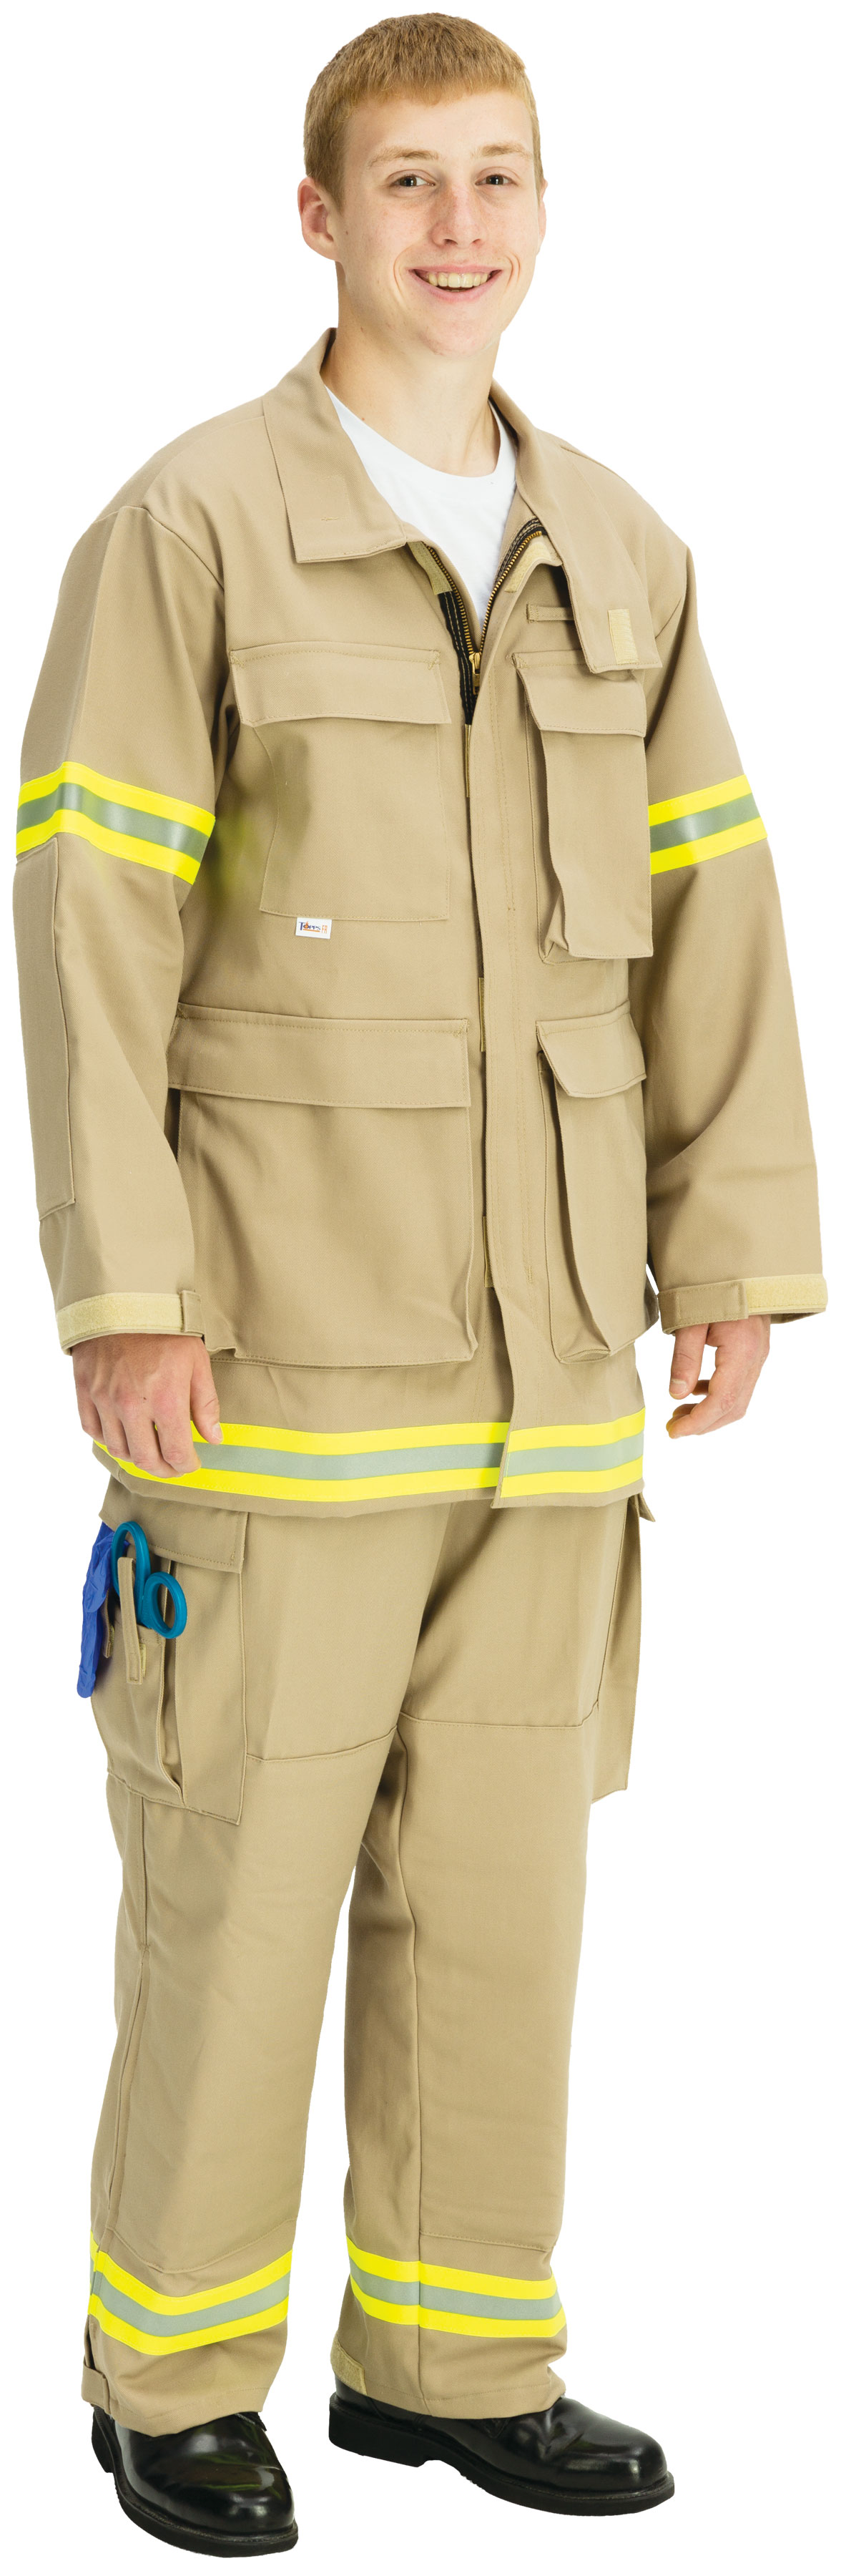 UltraSoft® Extrication Jacket-Topps Safety Apparel